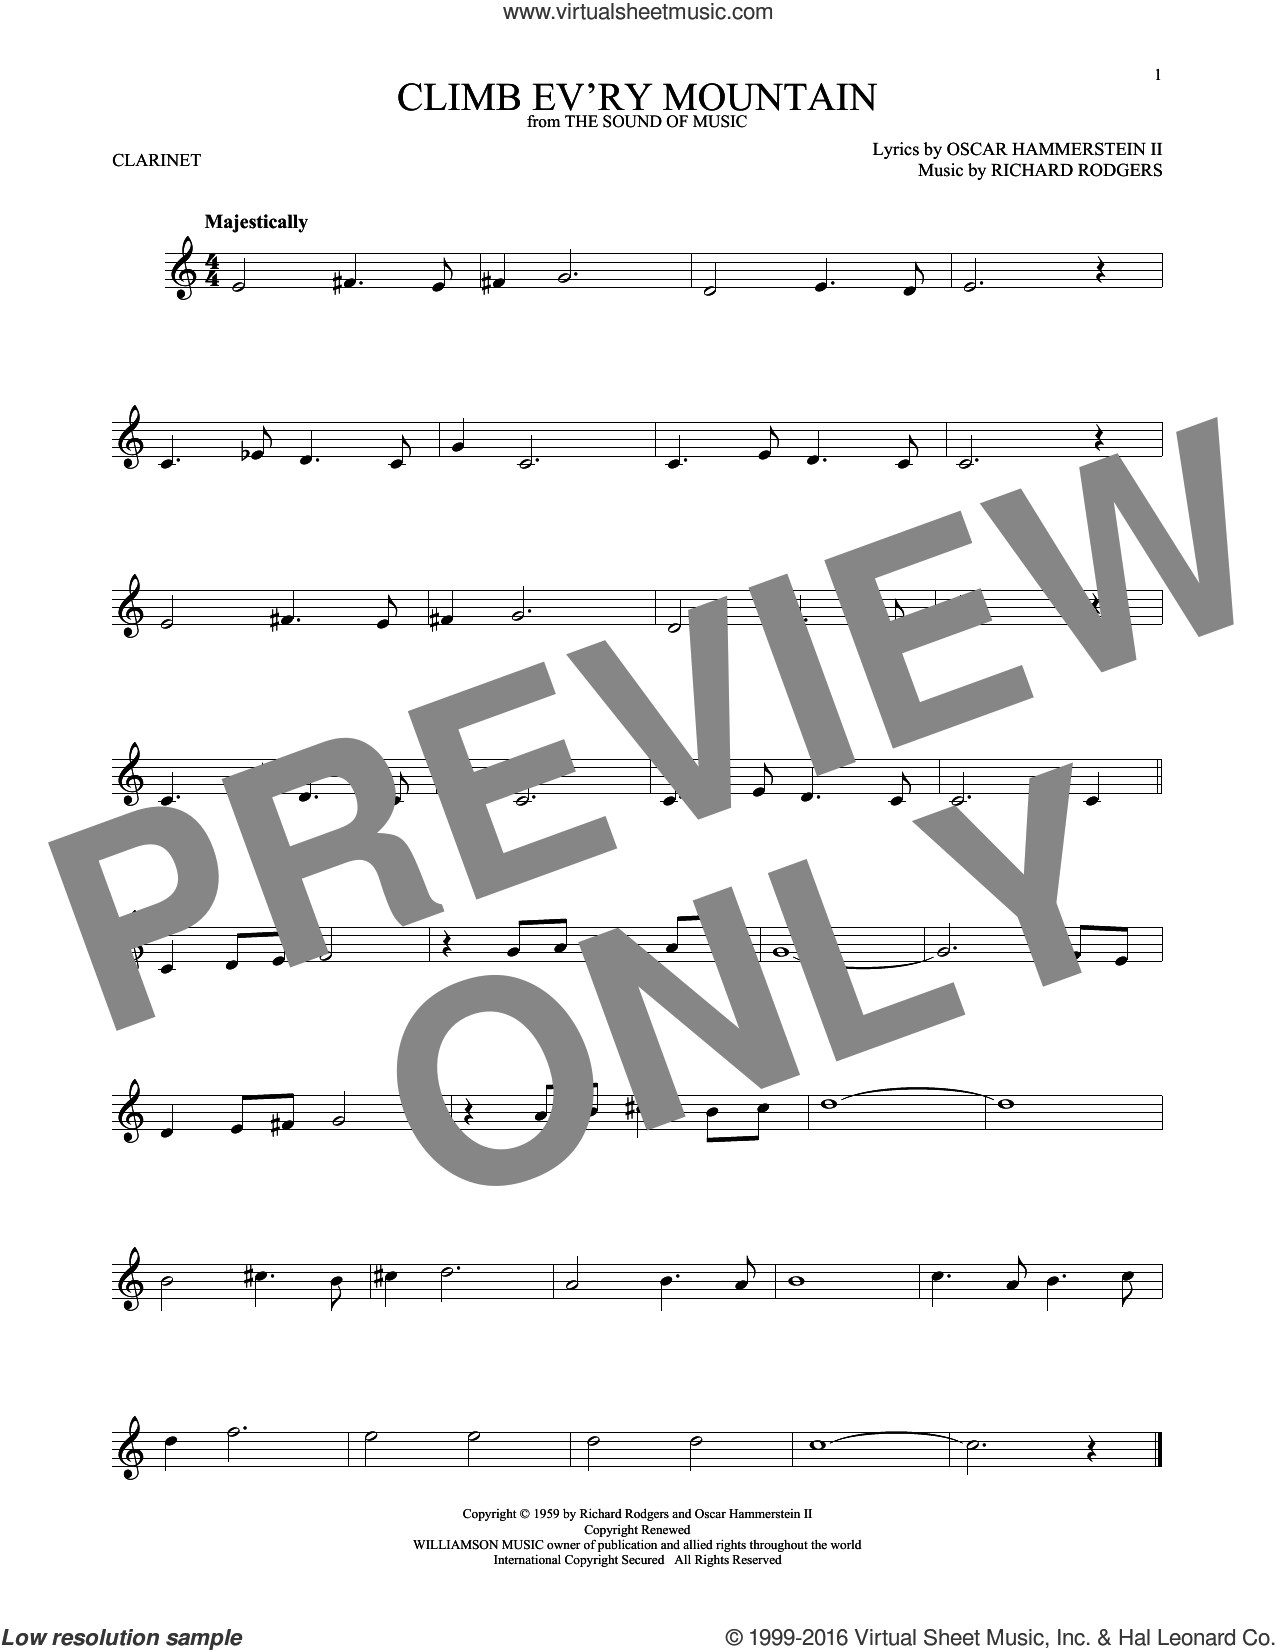 Climb Ev'ry Mountain sheet music for clarinet solo by Richard Rodgers, Tony Bennett and Oscar II Hammerstein, intermediate clarinet. Score Image Preview.